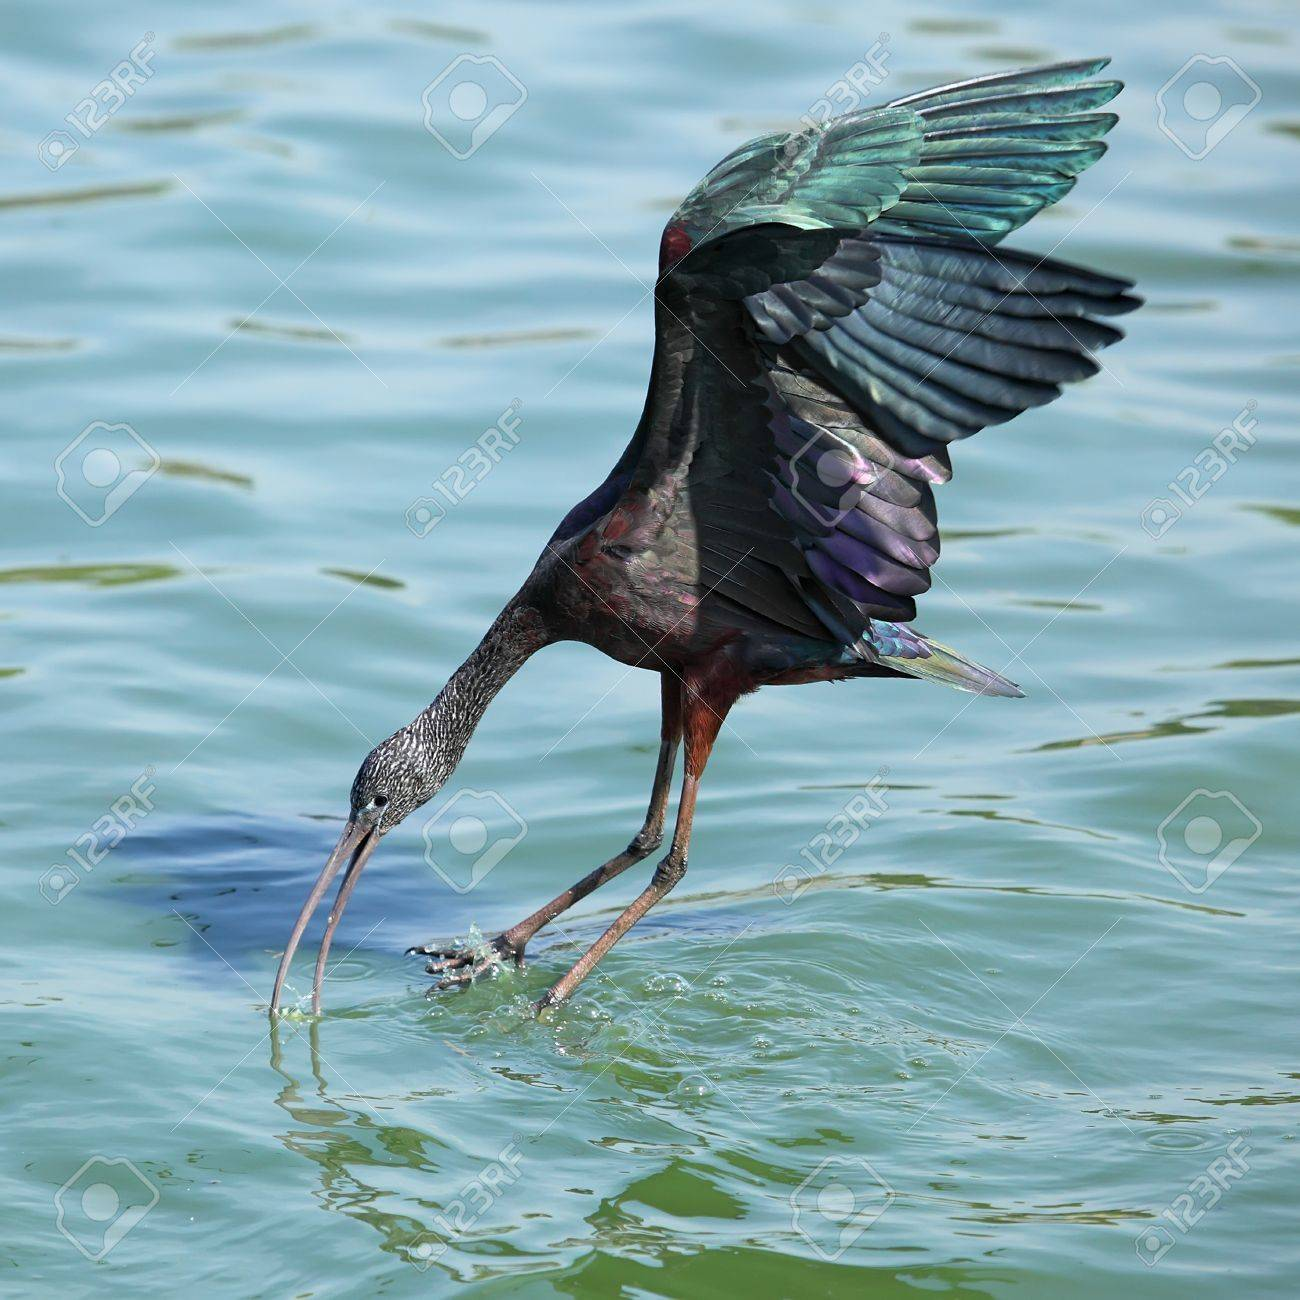 The Glossy Ibis  Plegadis falcinellus  is a wading bird in the ibis family Threskiornithidae Landing on water Stock Photo - 13325813